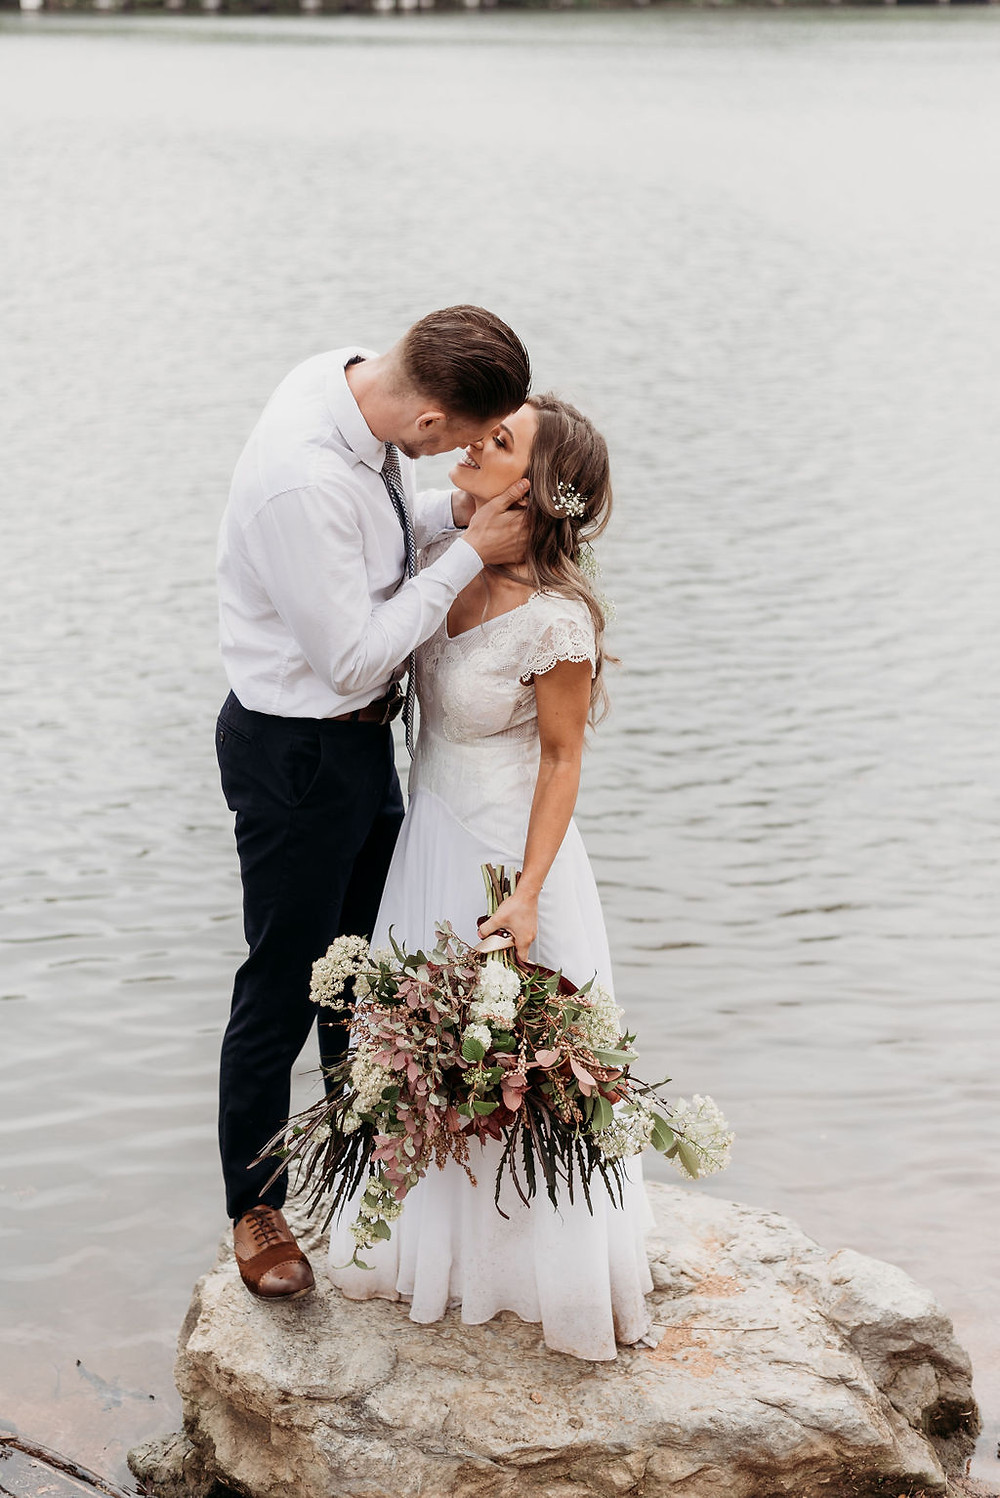 bride and groom stand on a rock in lady bird lake for their newlywed portraits during their austin elopement. the groom had the brides face gathered in his hands and she is looking up at him. bride holds bouquet down to her side